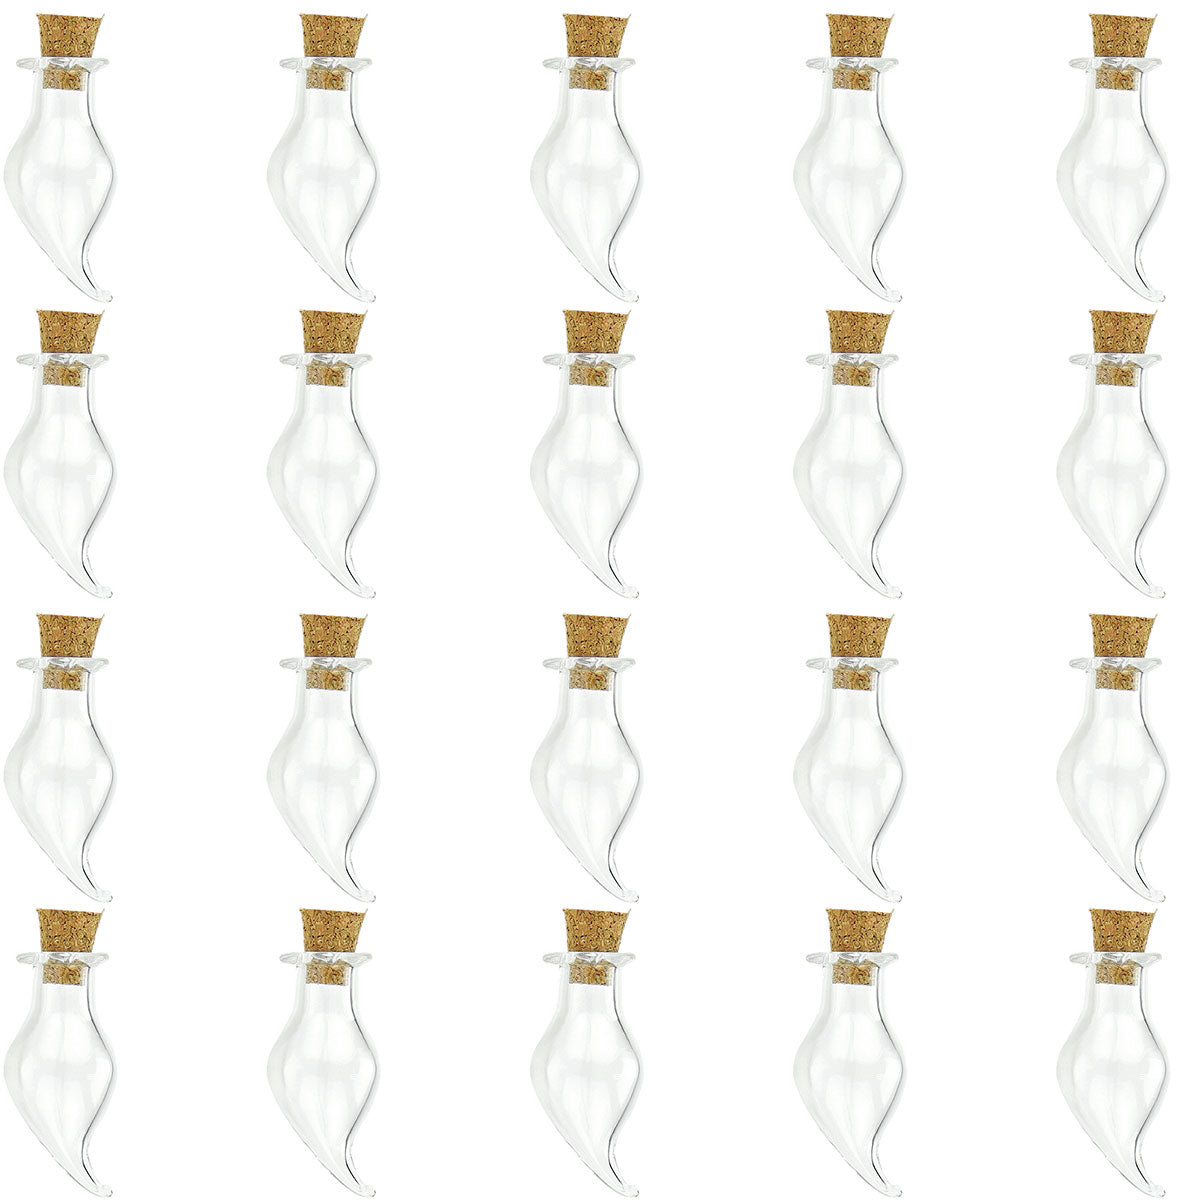 20 Pcs Mini Transparent Glass Bottles with Corks (Water Drop)